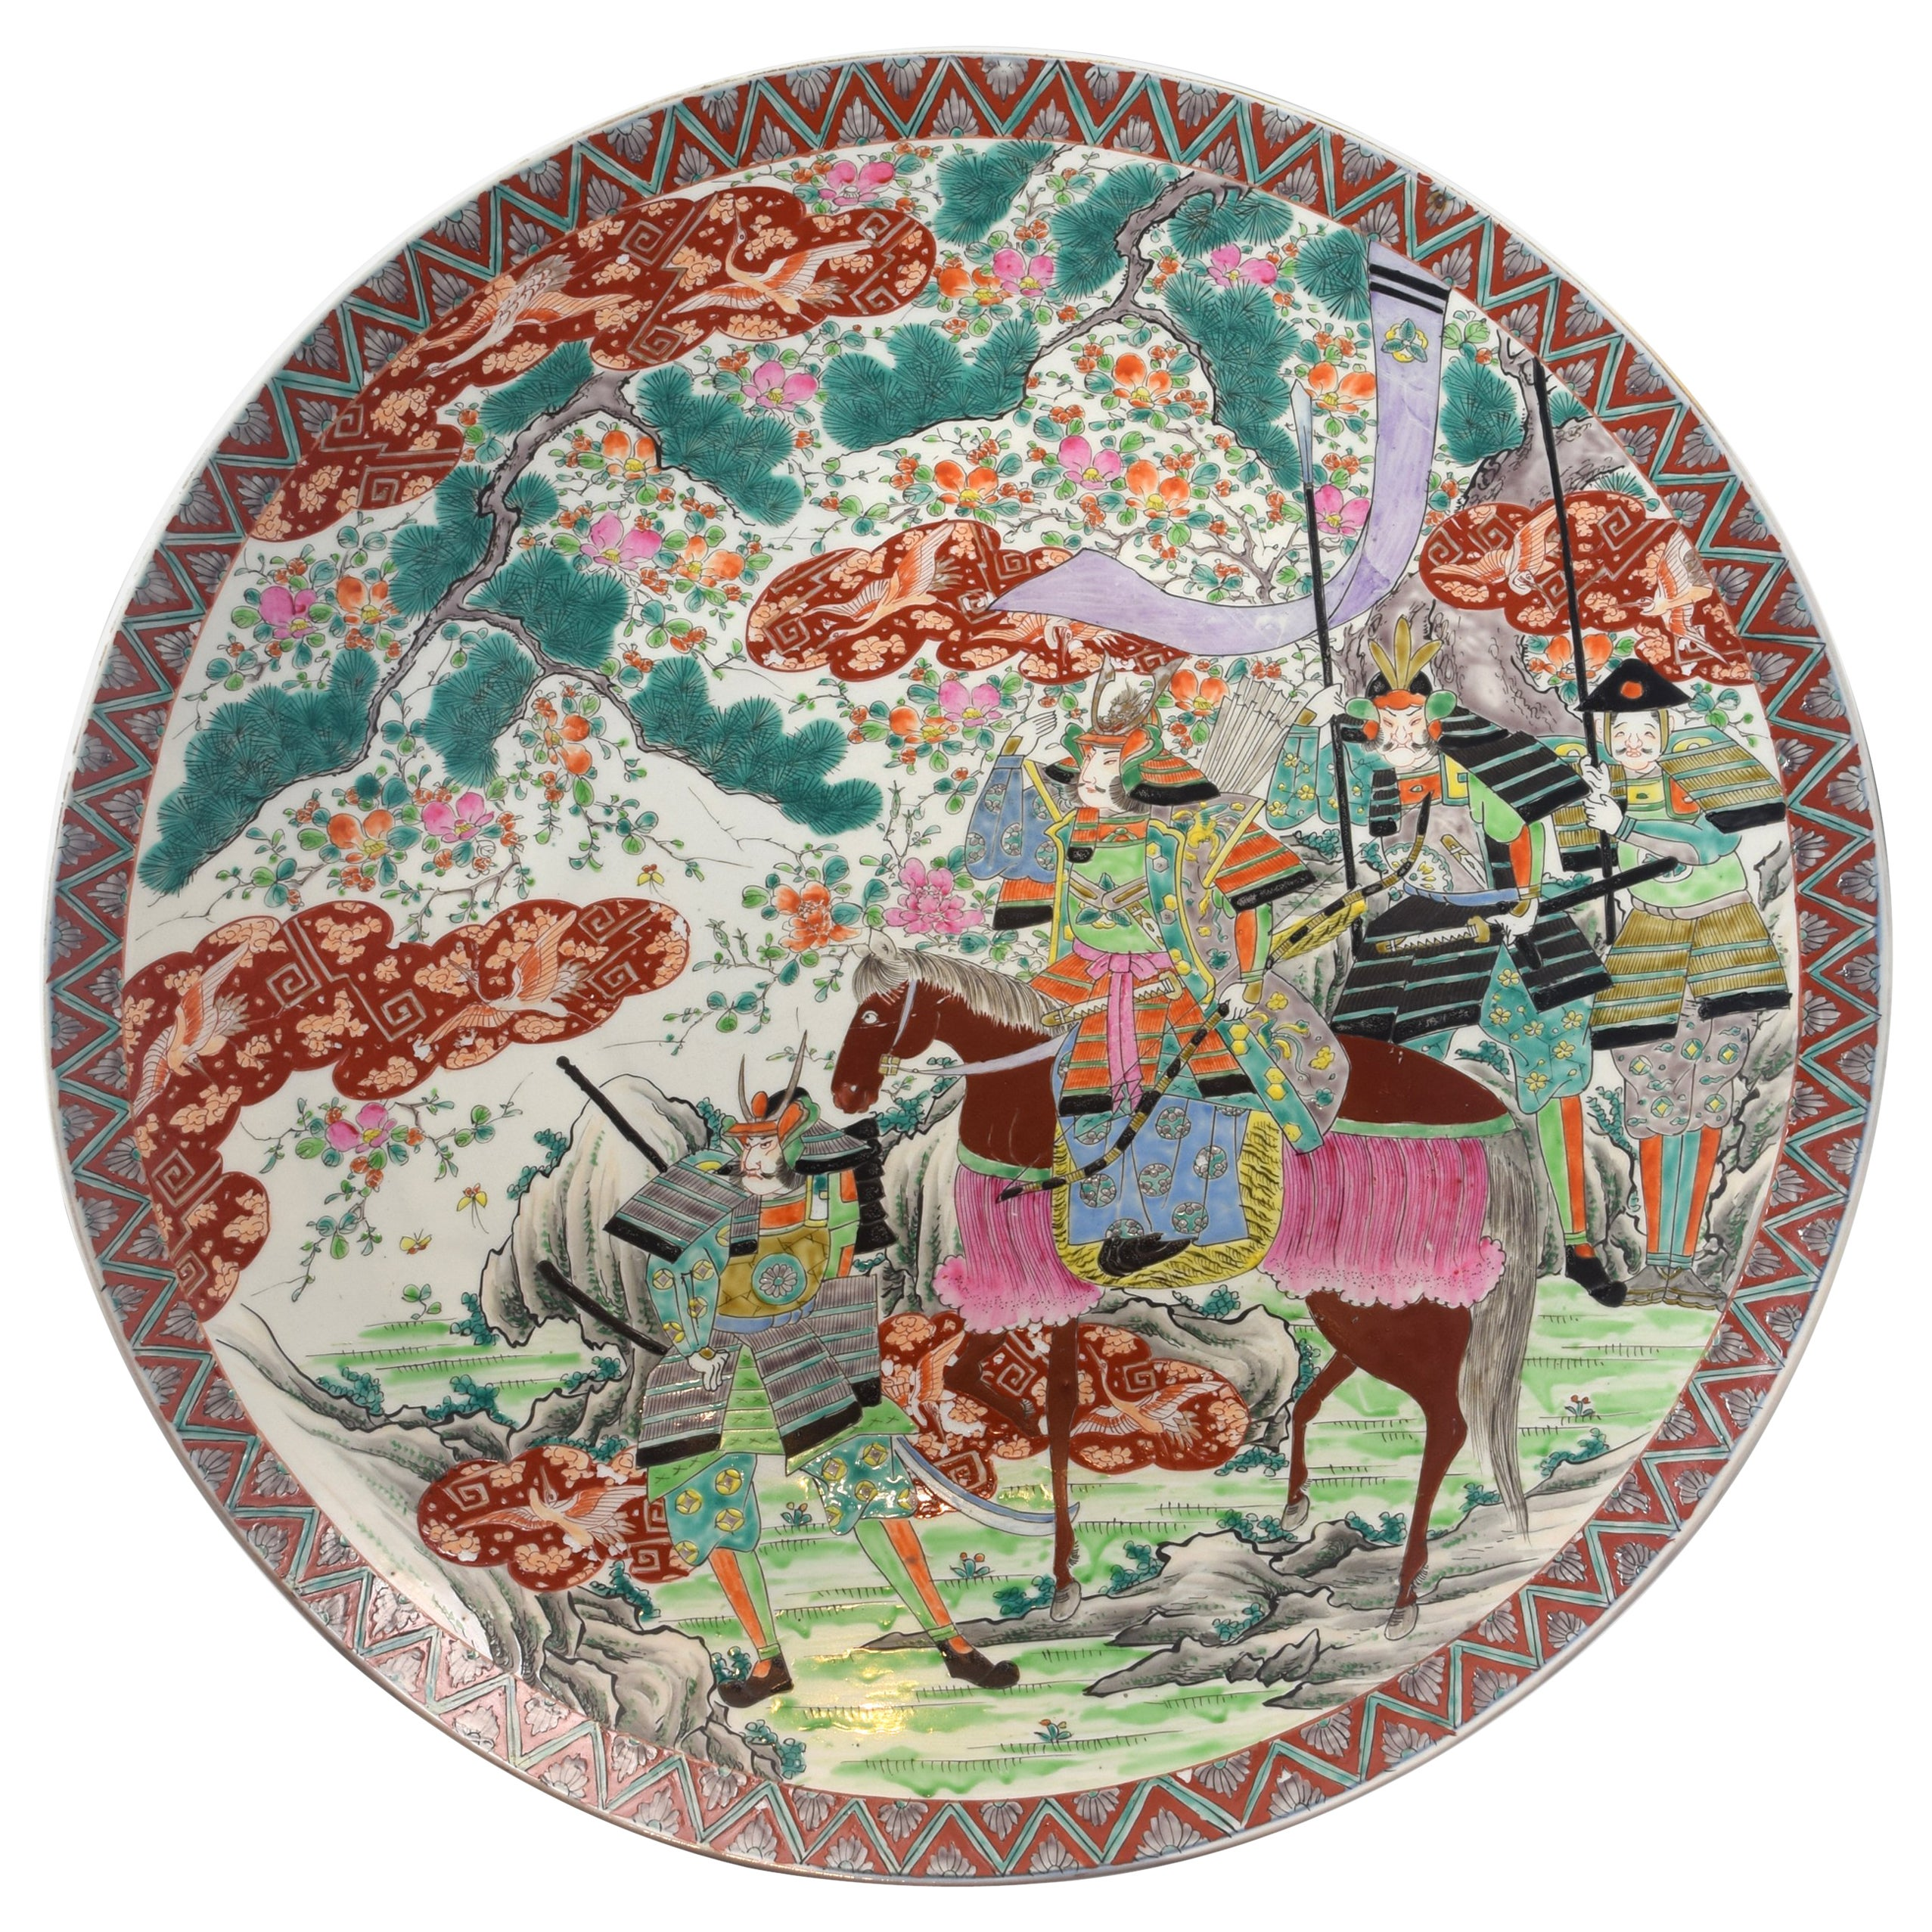 Charger or Plate. Porcelain. Possibly, Imari, Japan, 19th Century